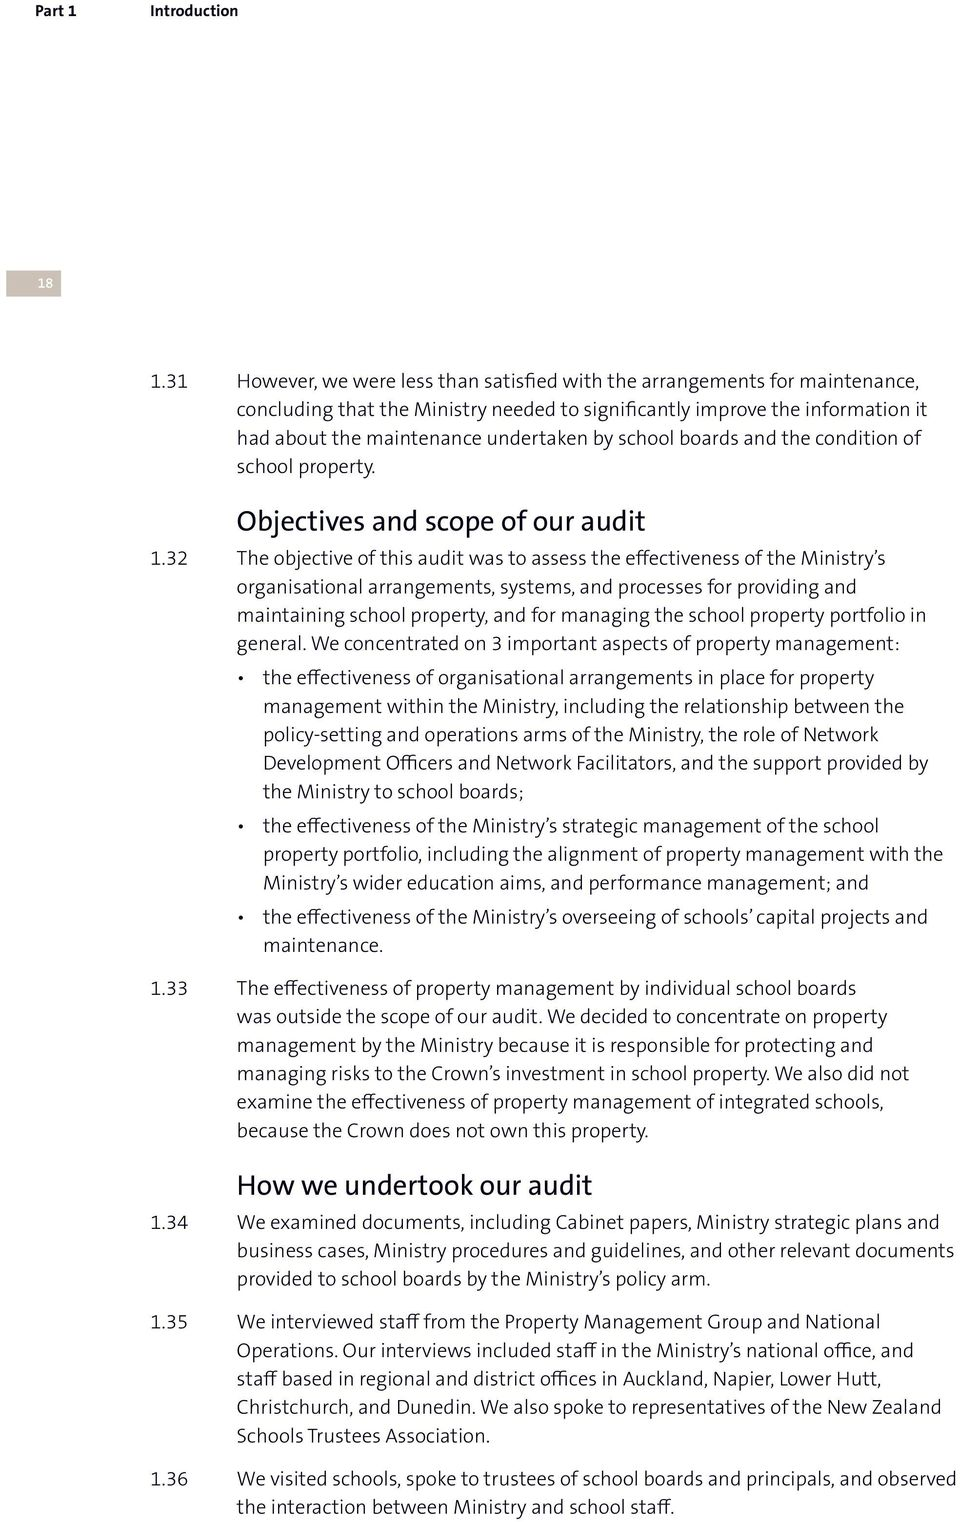 school boards and the condition of school property. Objectives and scope of our audit 1.